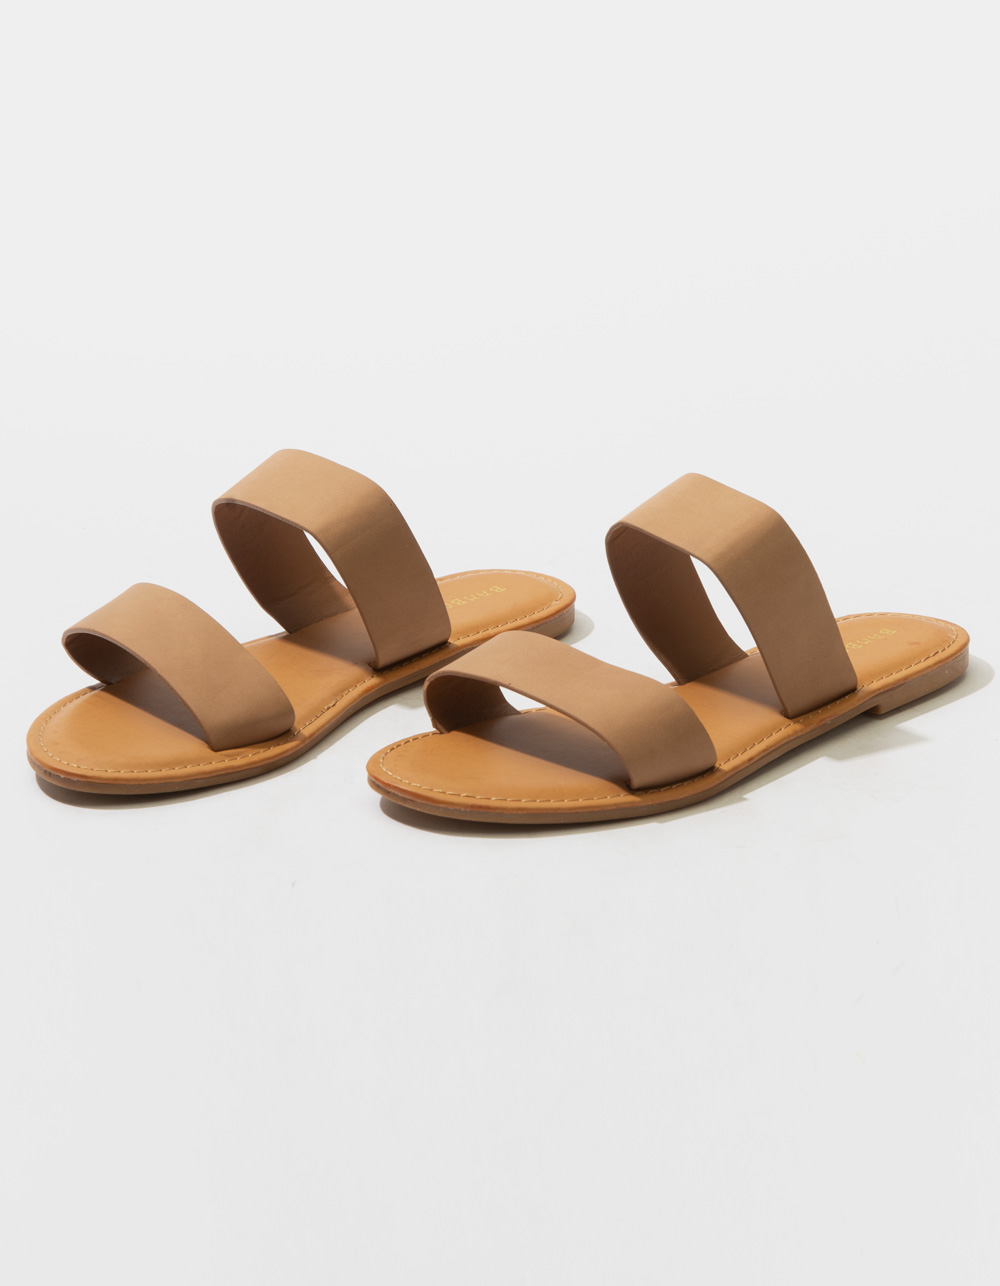 BAMBOO Double Strap Camel Sandals